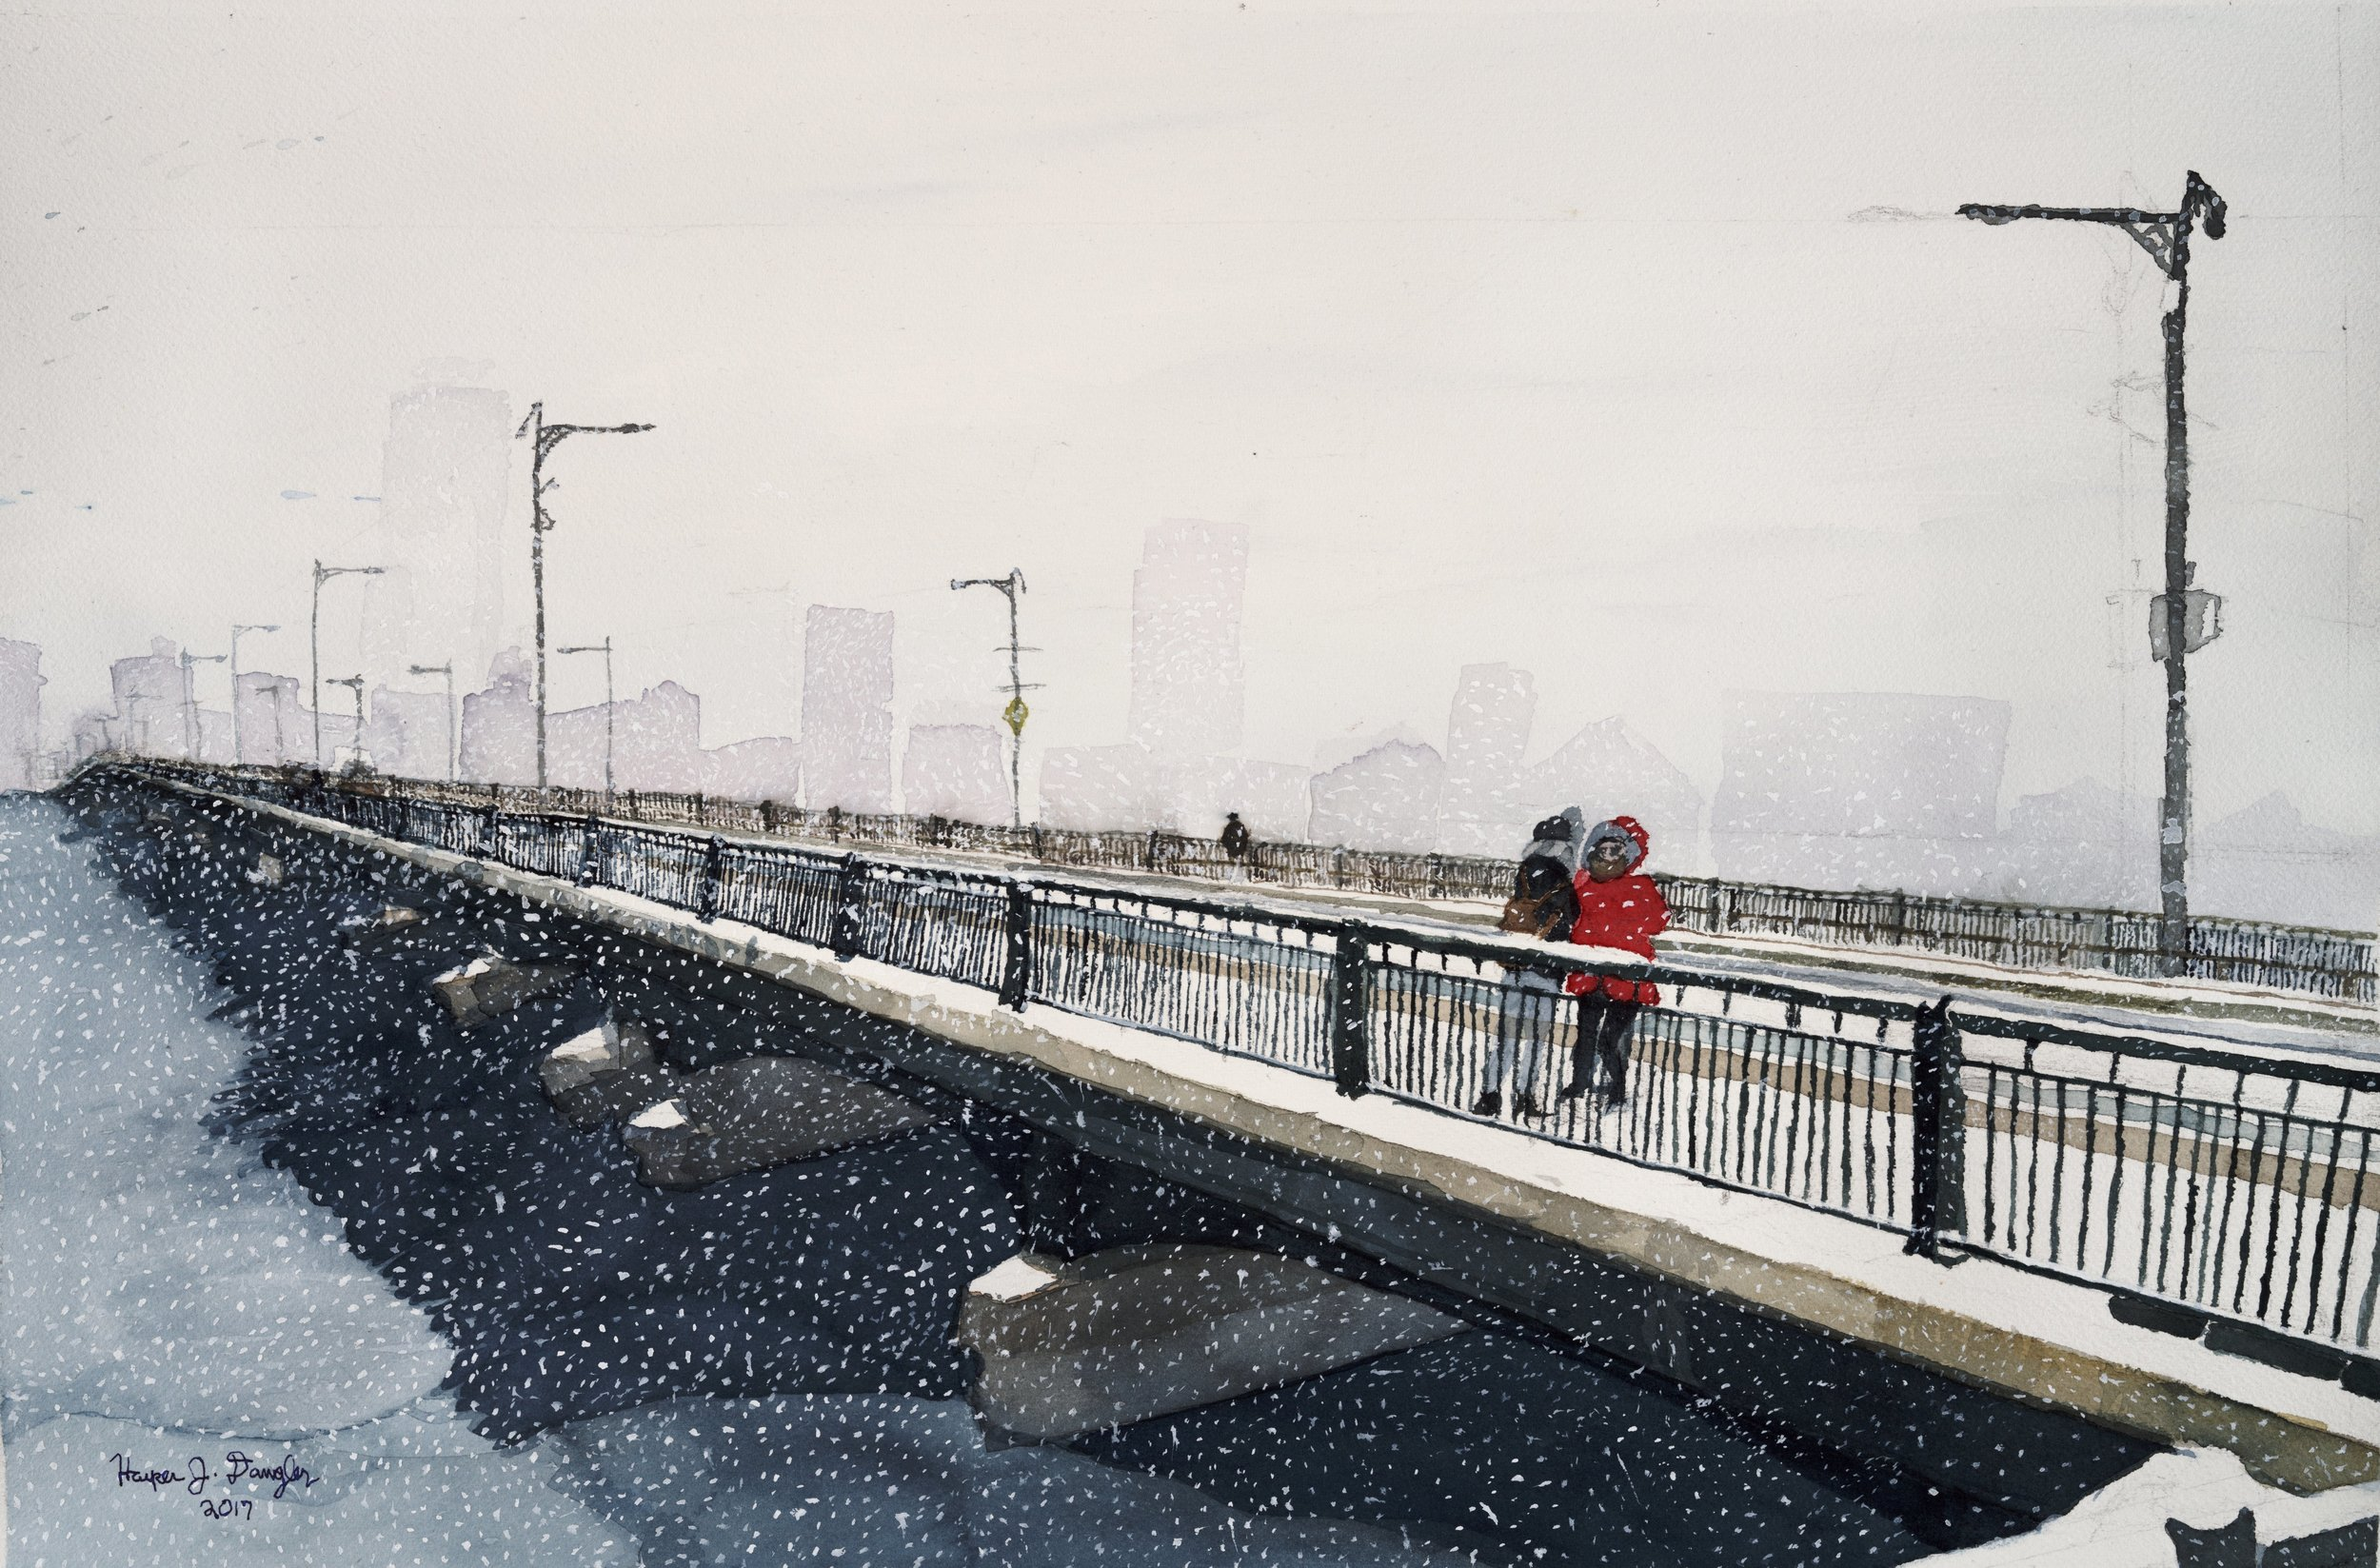 Bridge to a Wintry City